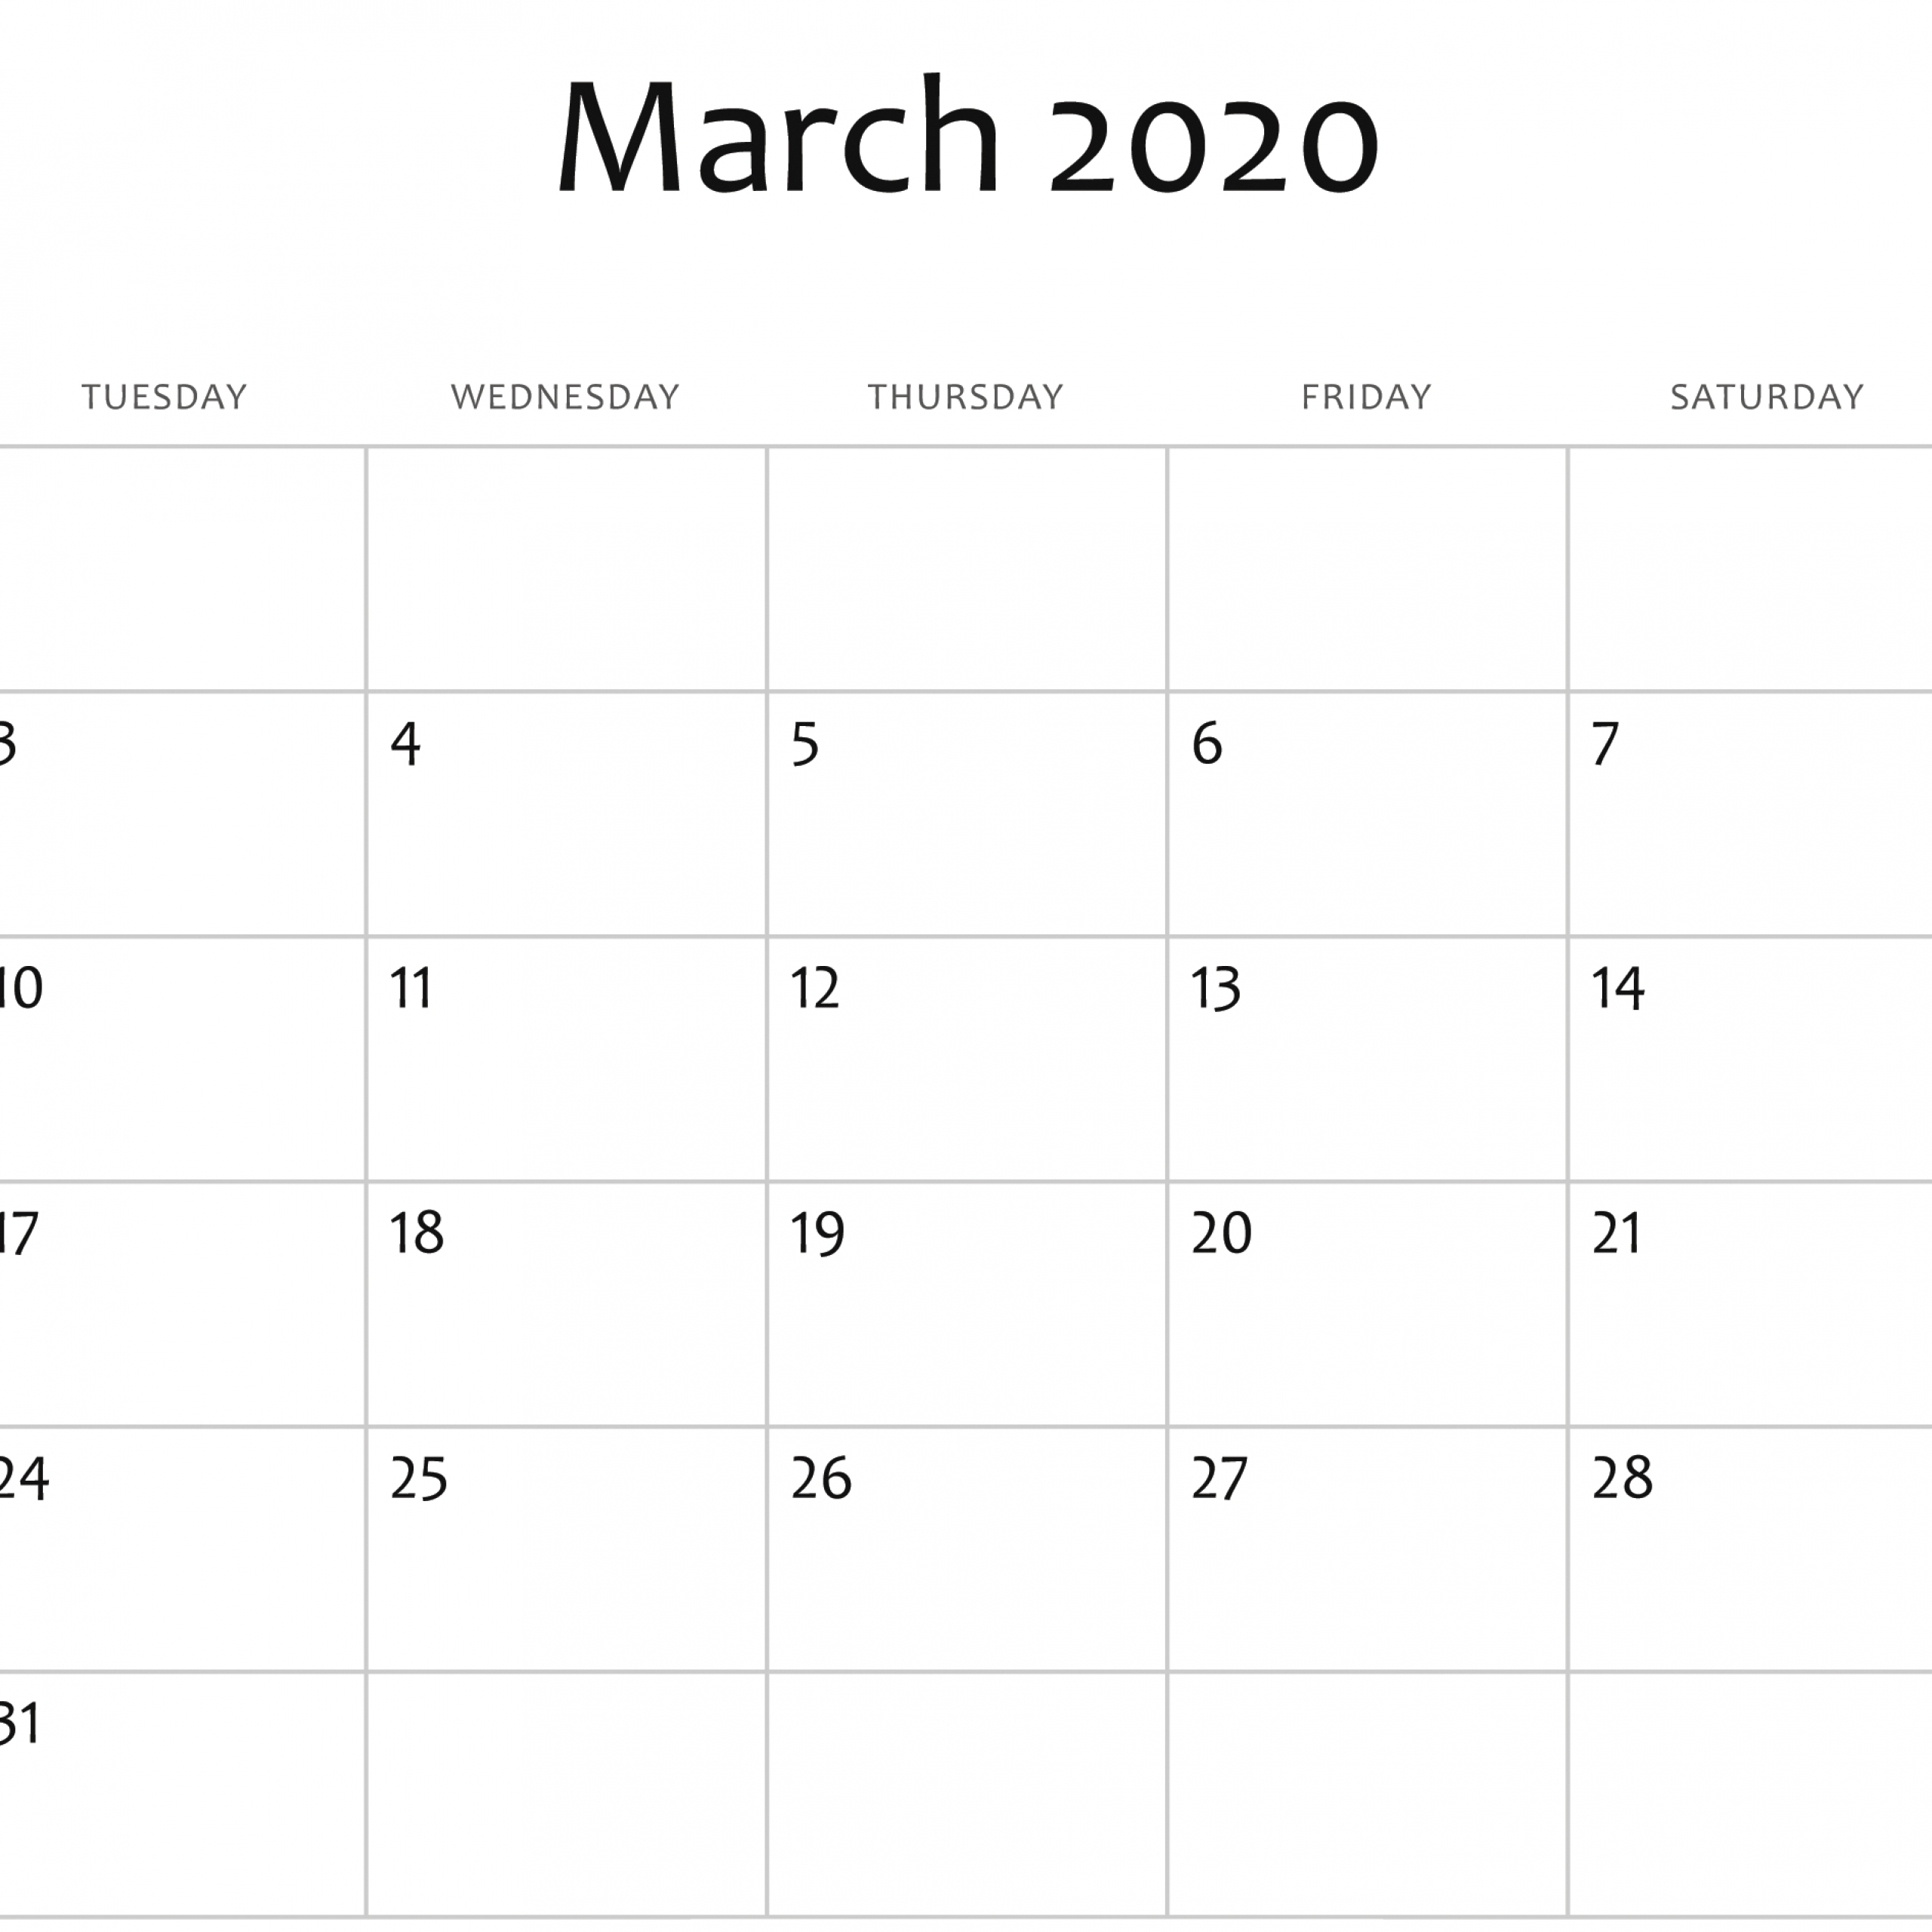 February And March 2020 Calendar Editable